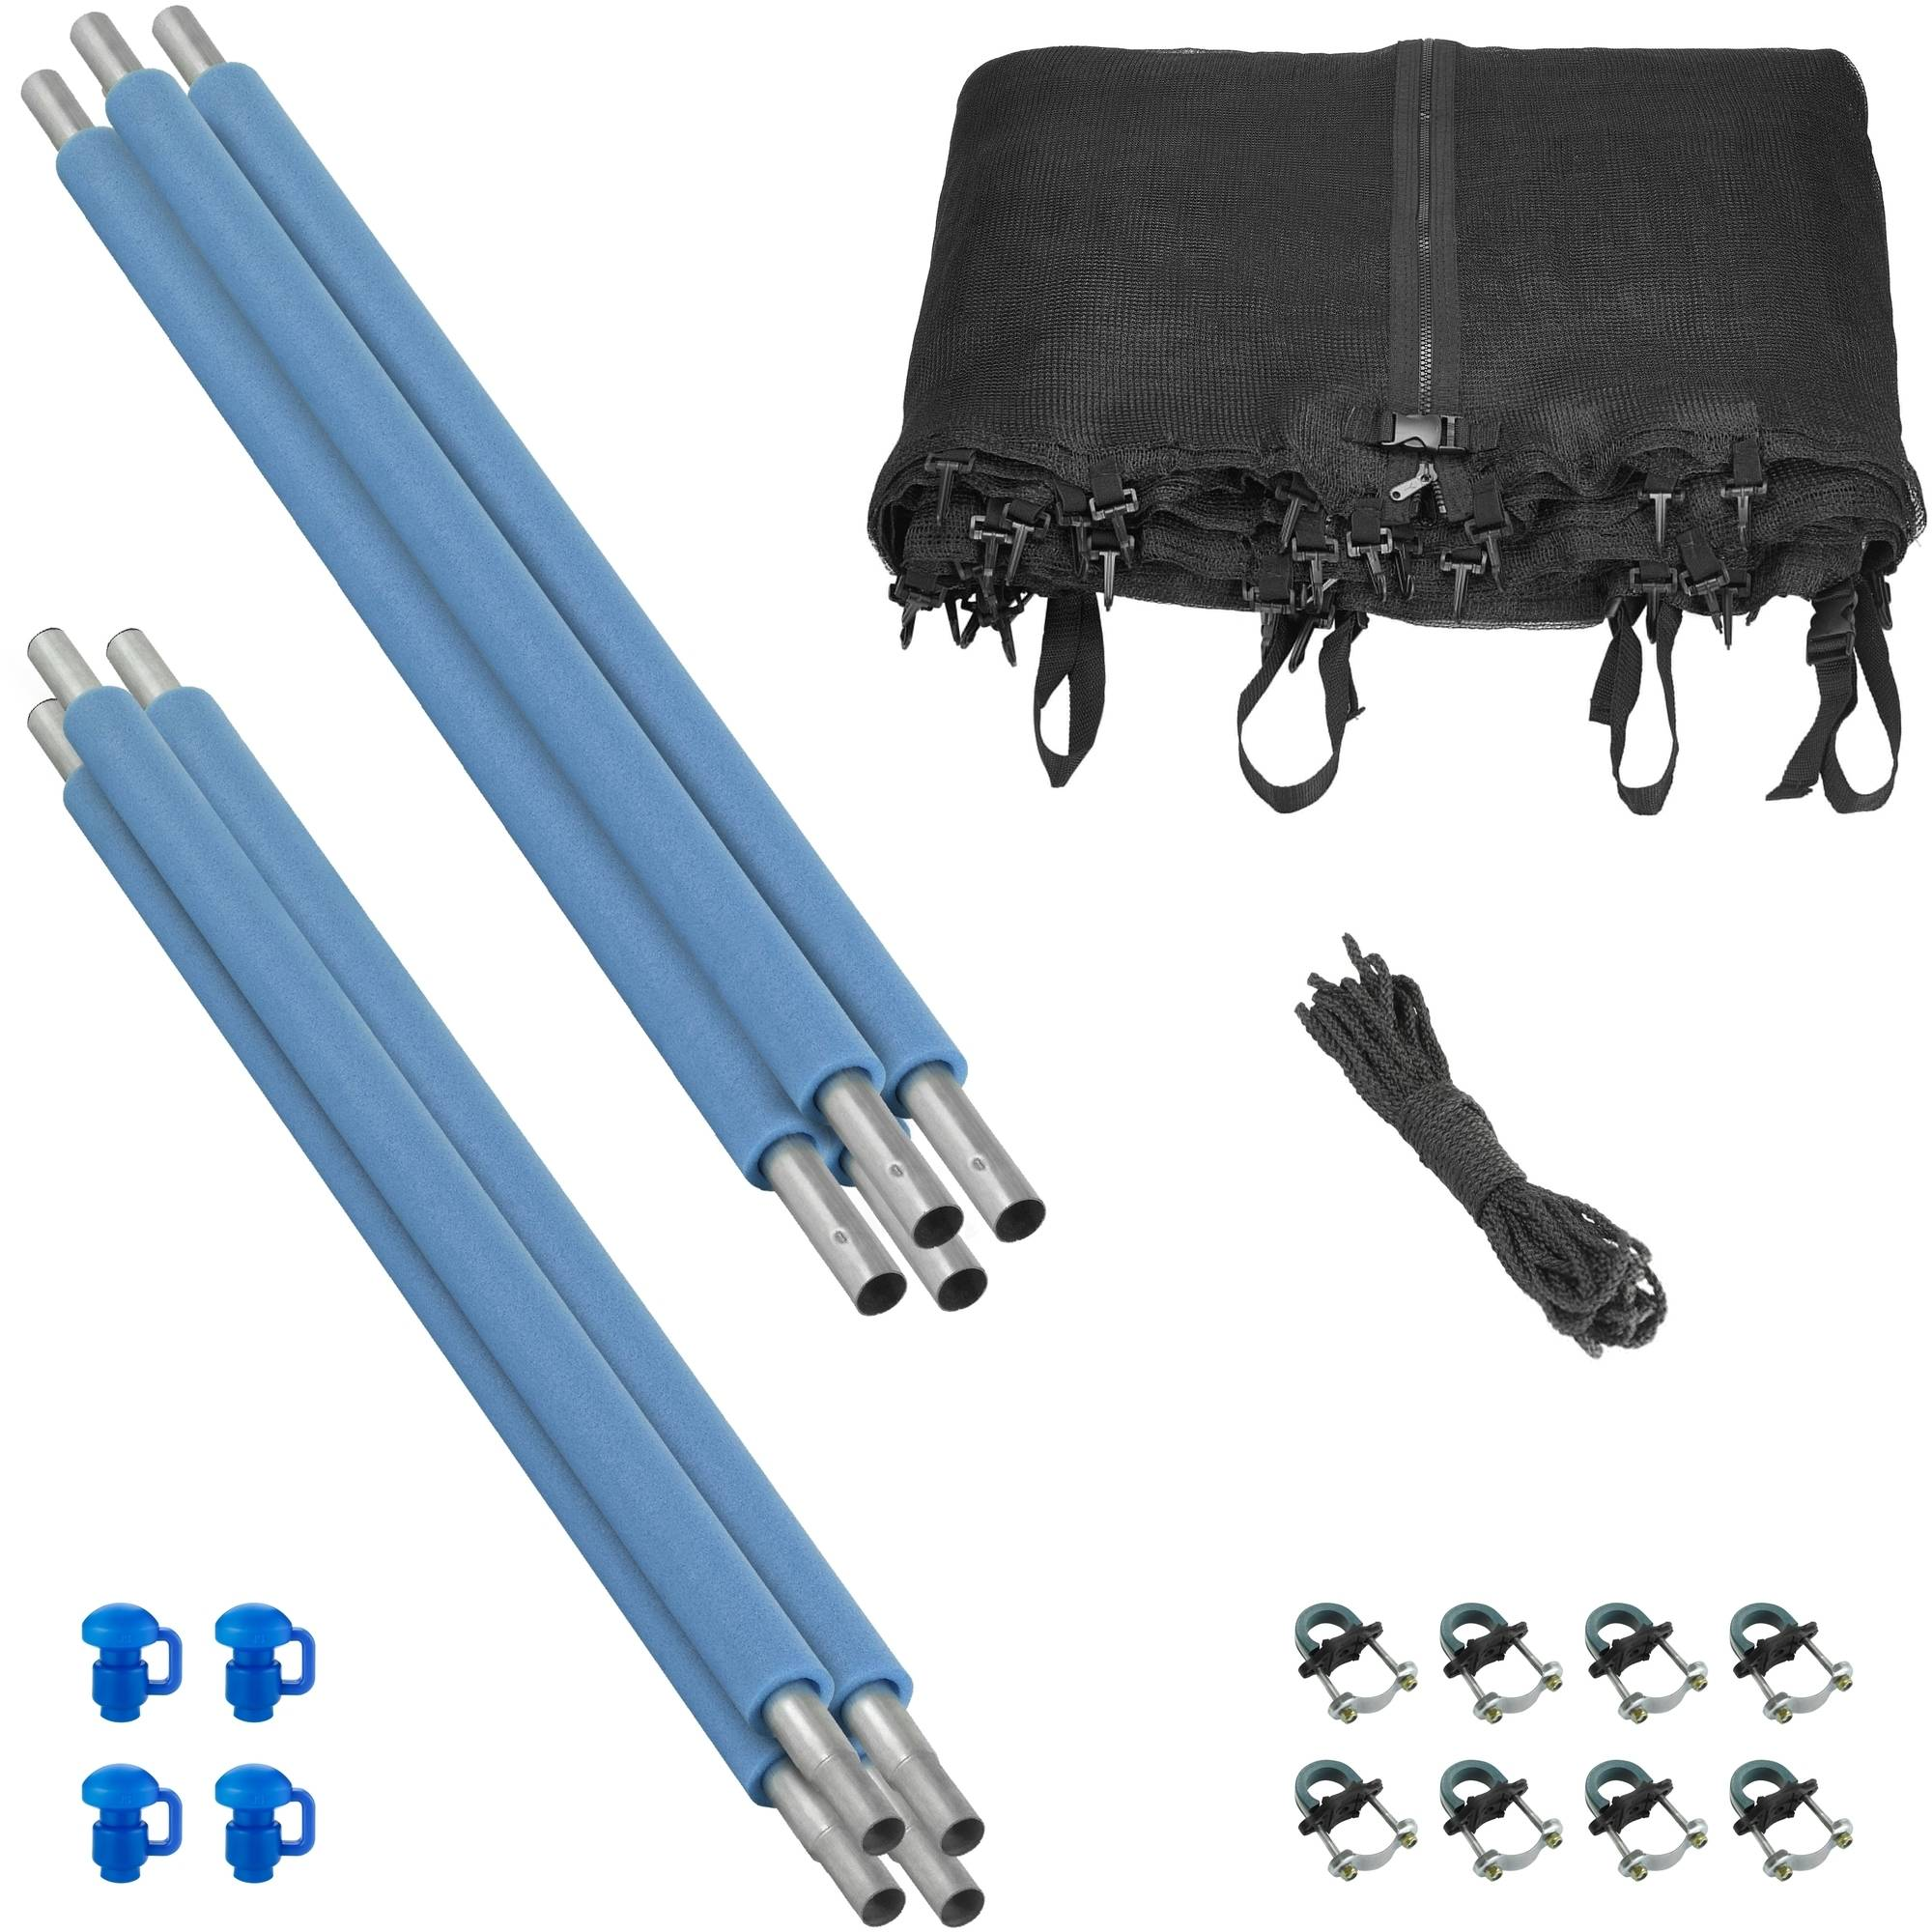 Trampoline Enclosure Set, to fit 14 FT. Round Frames, for 2 or 4 W-Shaped Legs -Set Includes: Net, Poles & Hardware Only